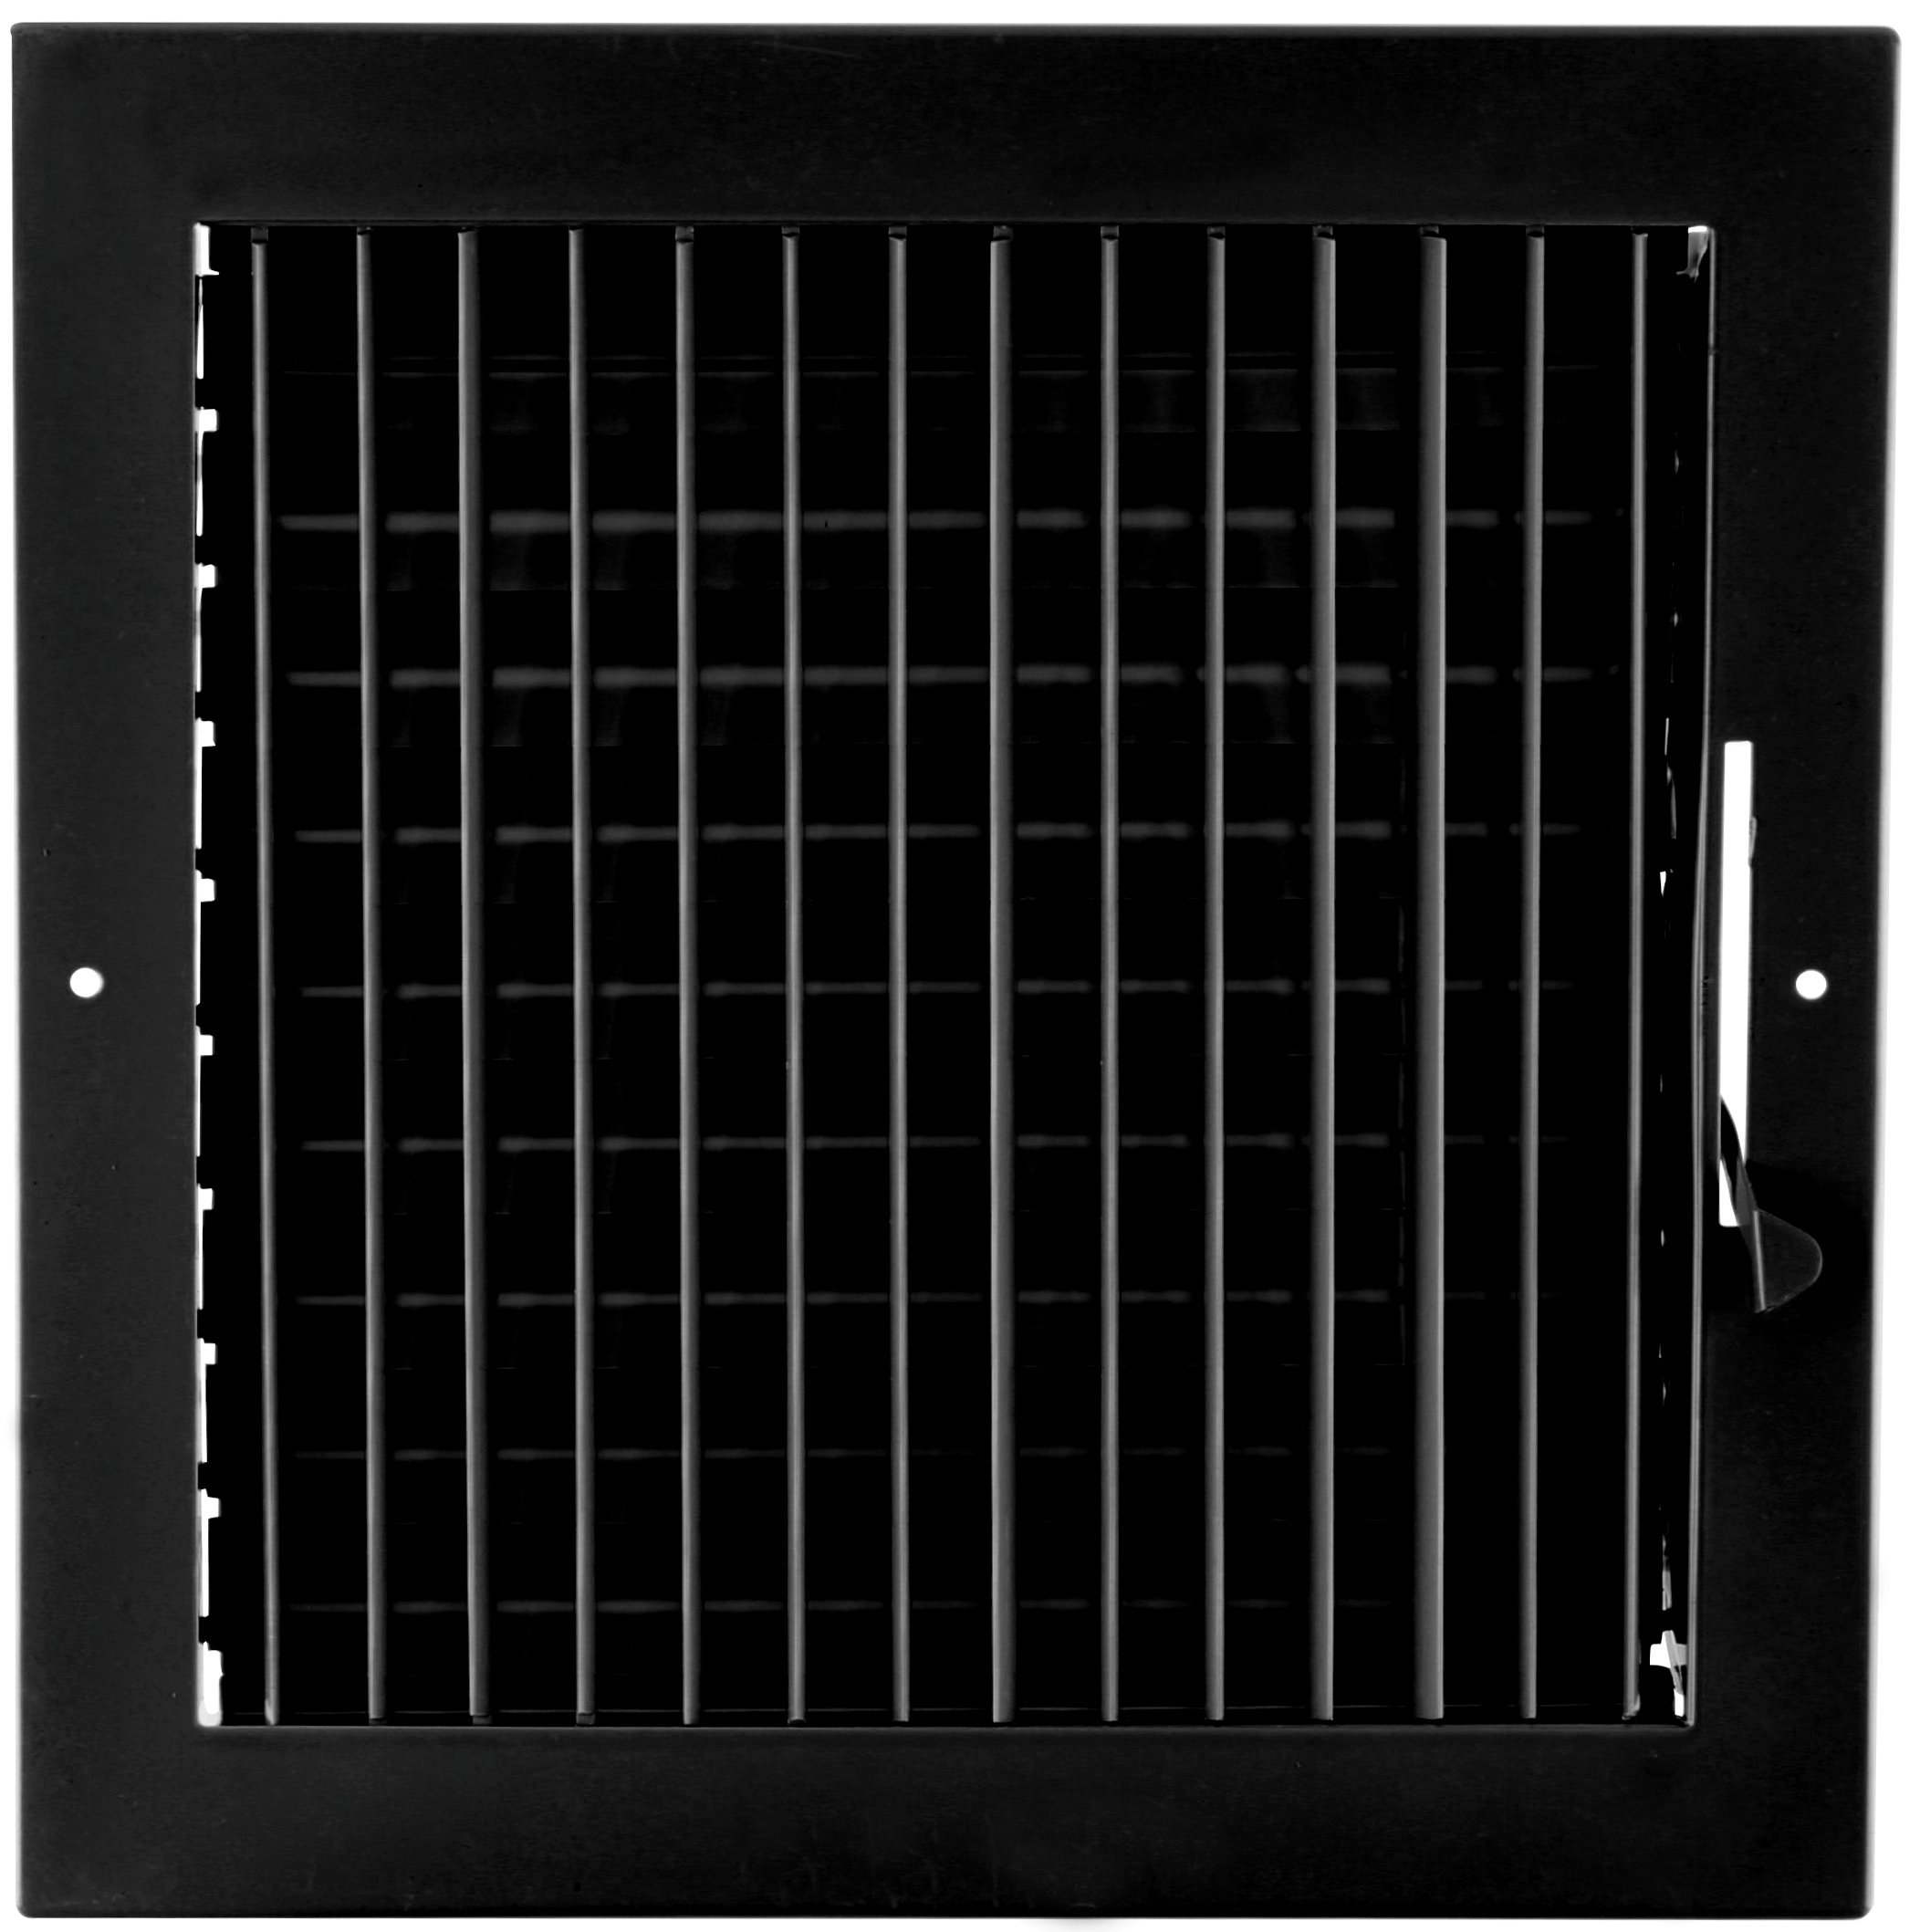 8'' X 8'' ADJUSTABLE AIR SUPPLY DIFFUSER - HVAC Vent Duct Cover Sidewall or Cieling - Grille Register - High Airflow - Black